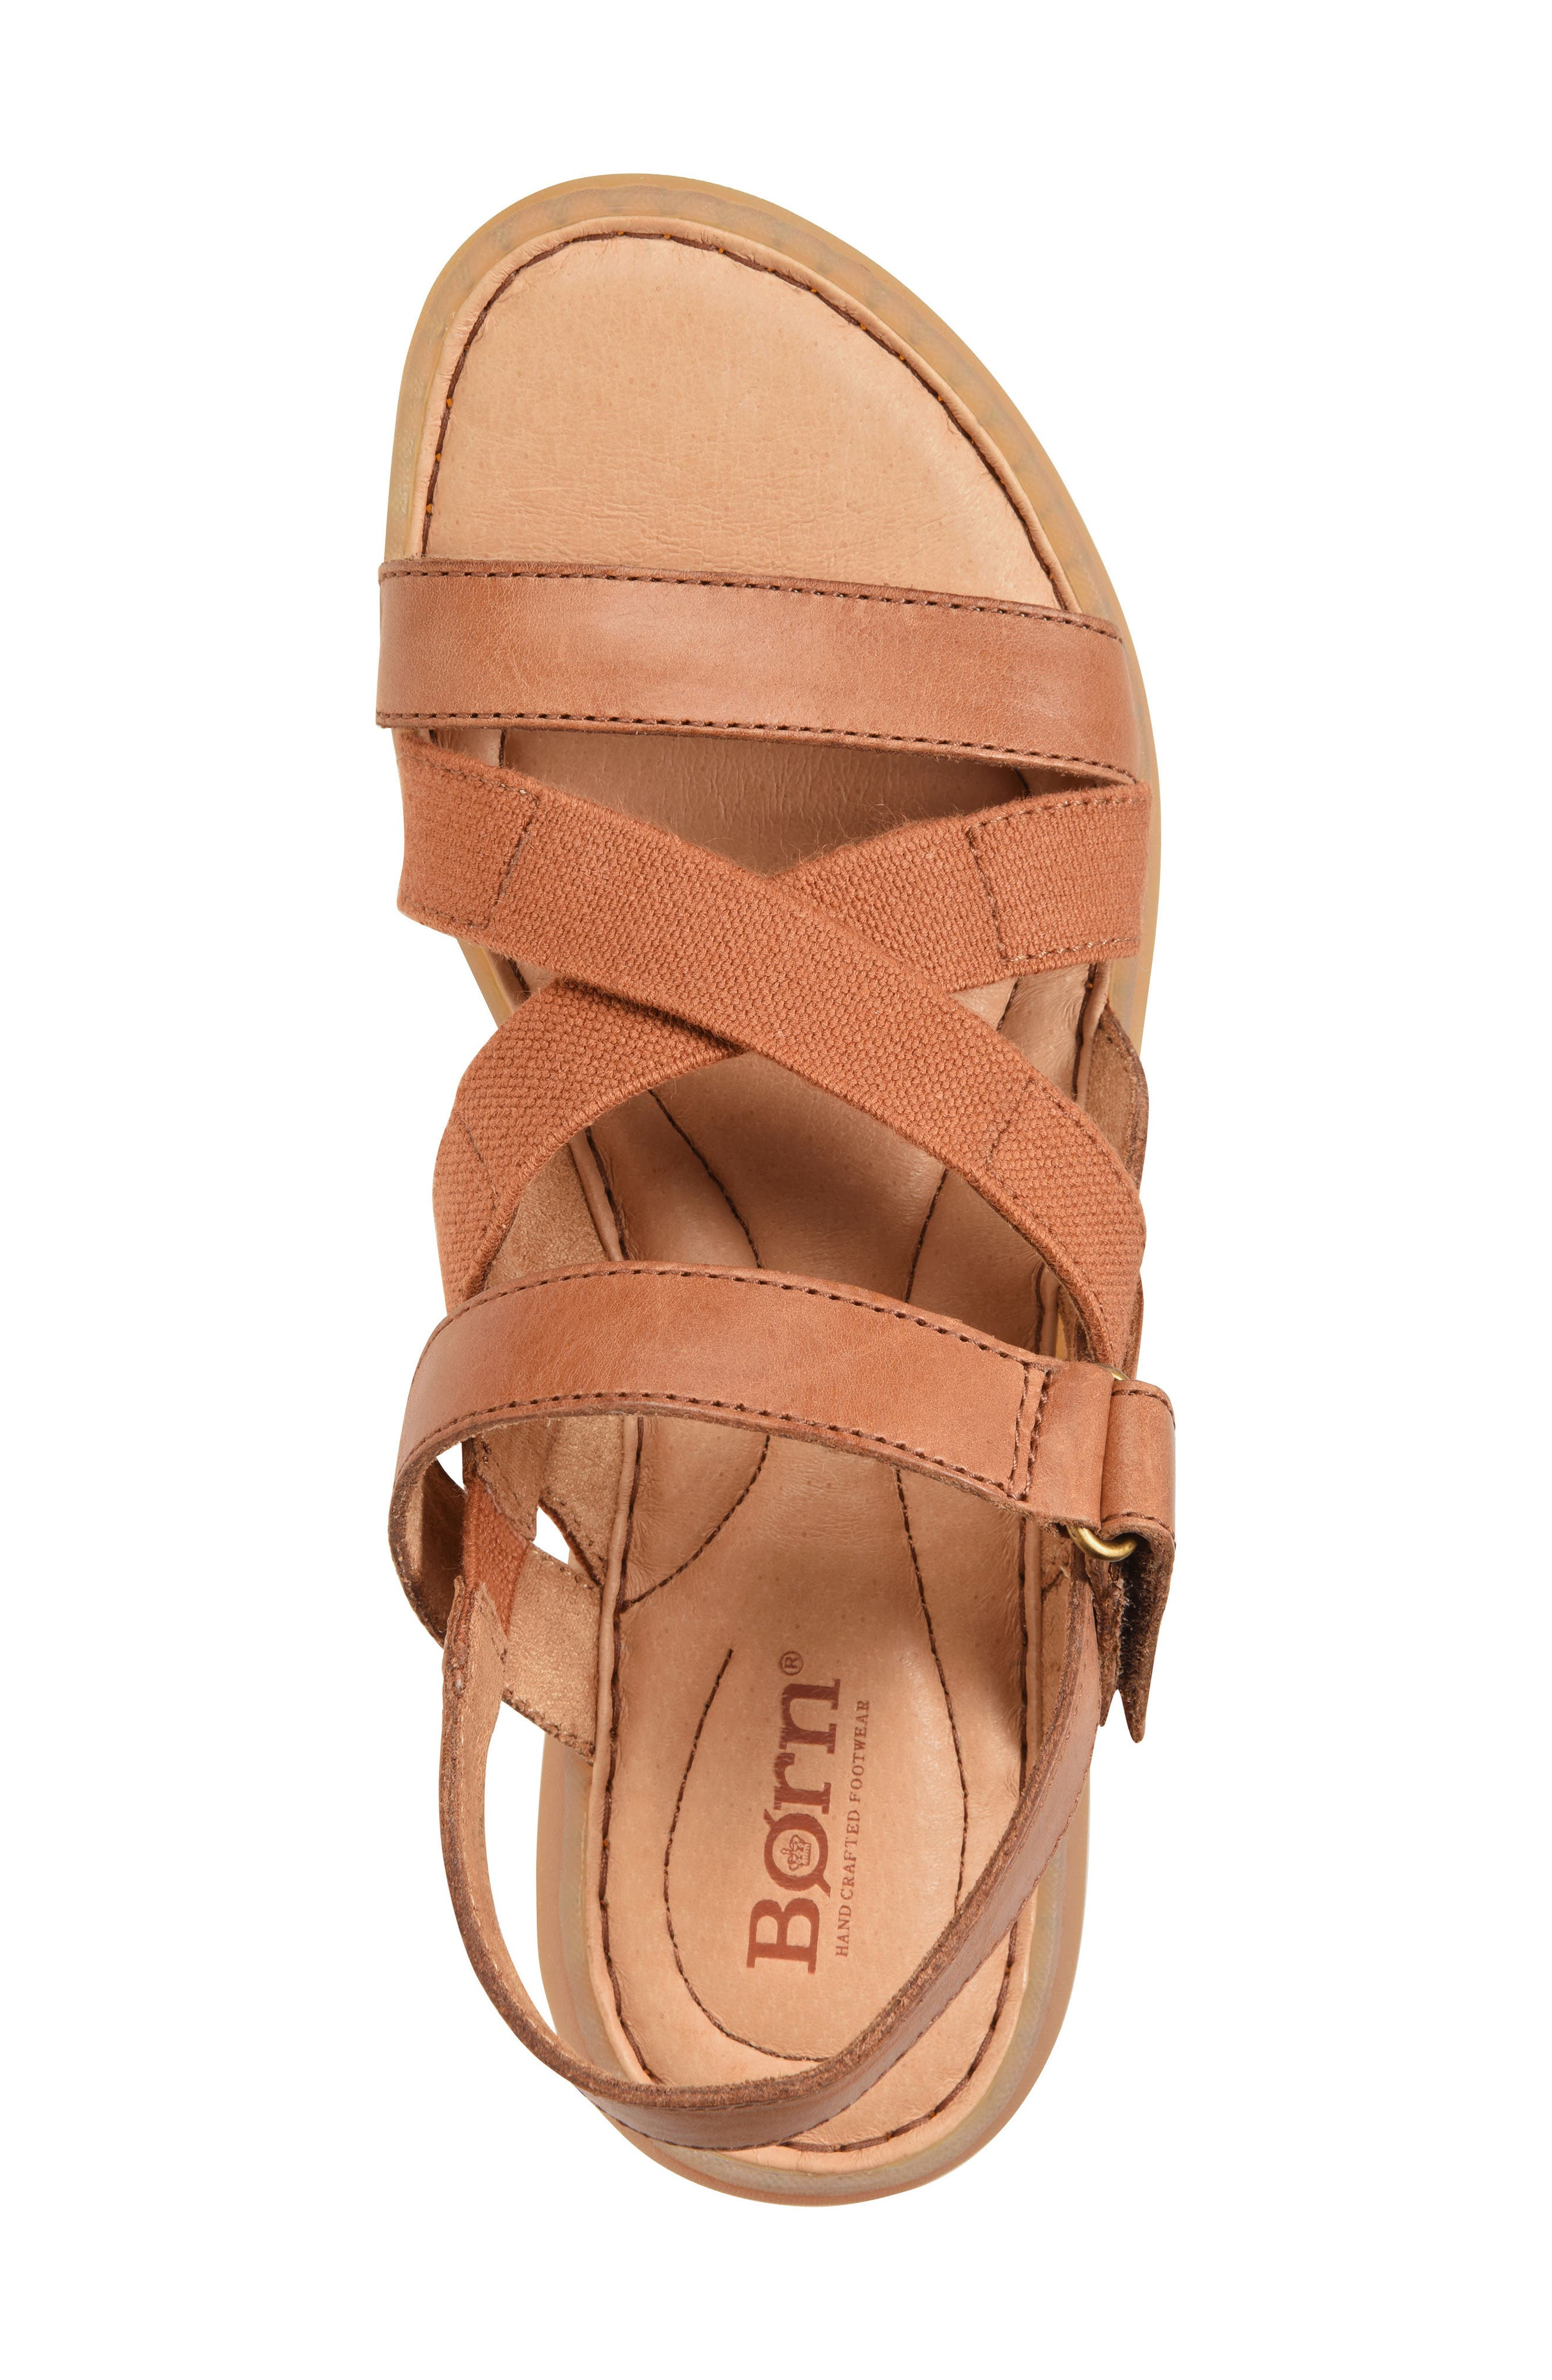 Manta Sandal,                             Alternate thumbnail 5, color,                             Brown Leather